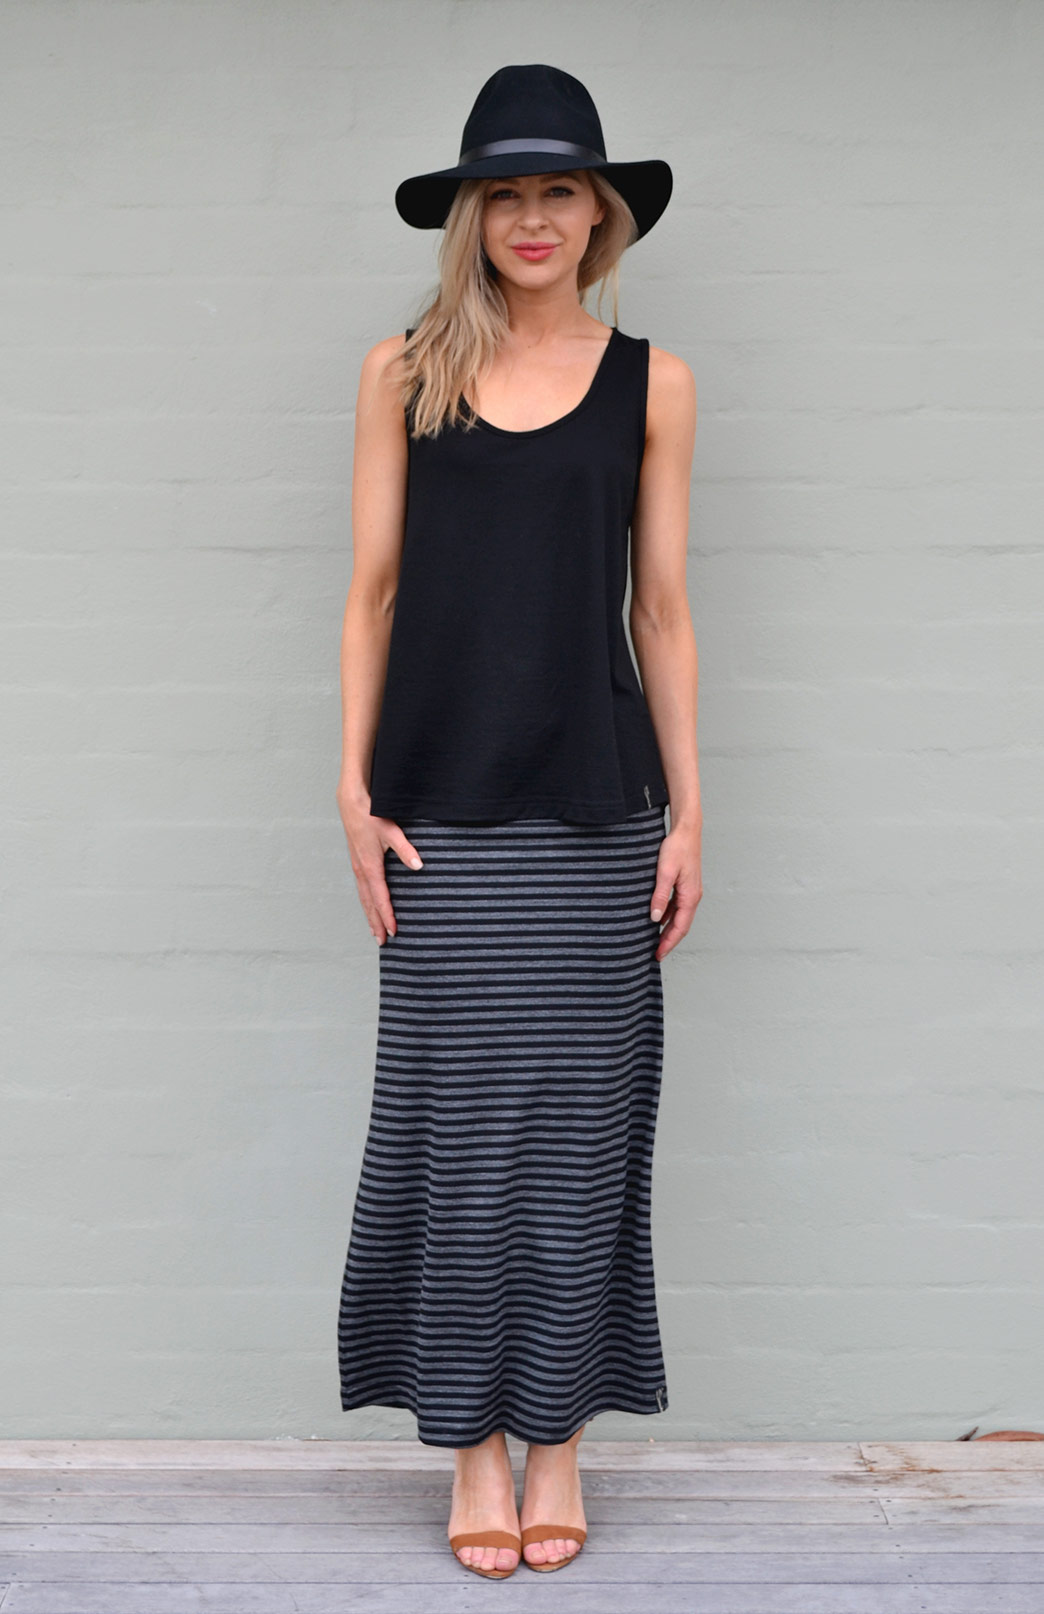 Maxi Skirt - Patterned - Women's Black and Grey Striped Merino Wool Blend Maxi Skirt with Wide Waistband - Smitten Merino Tasmania Australia